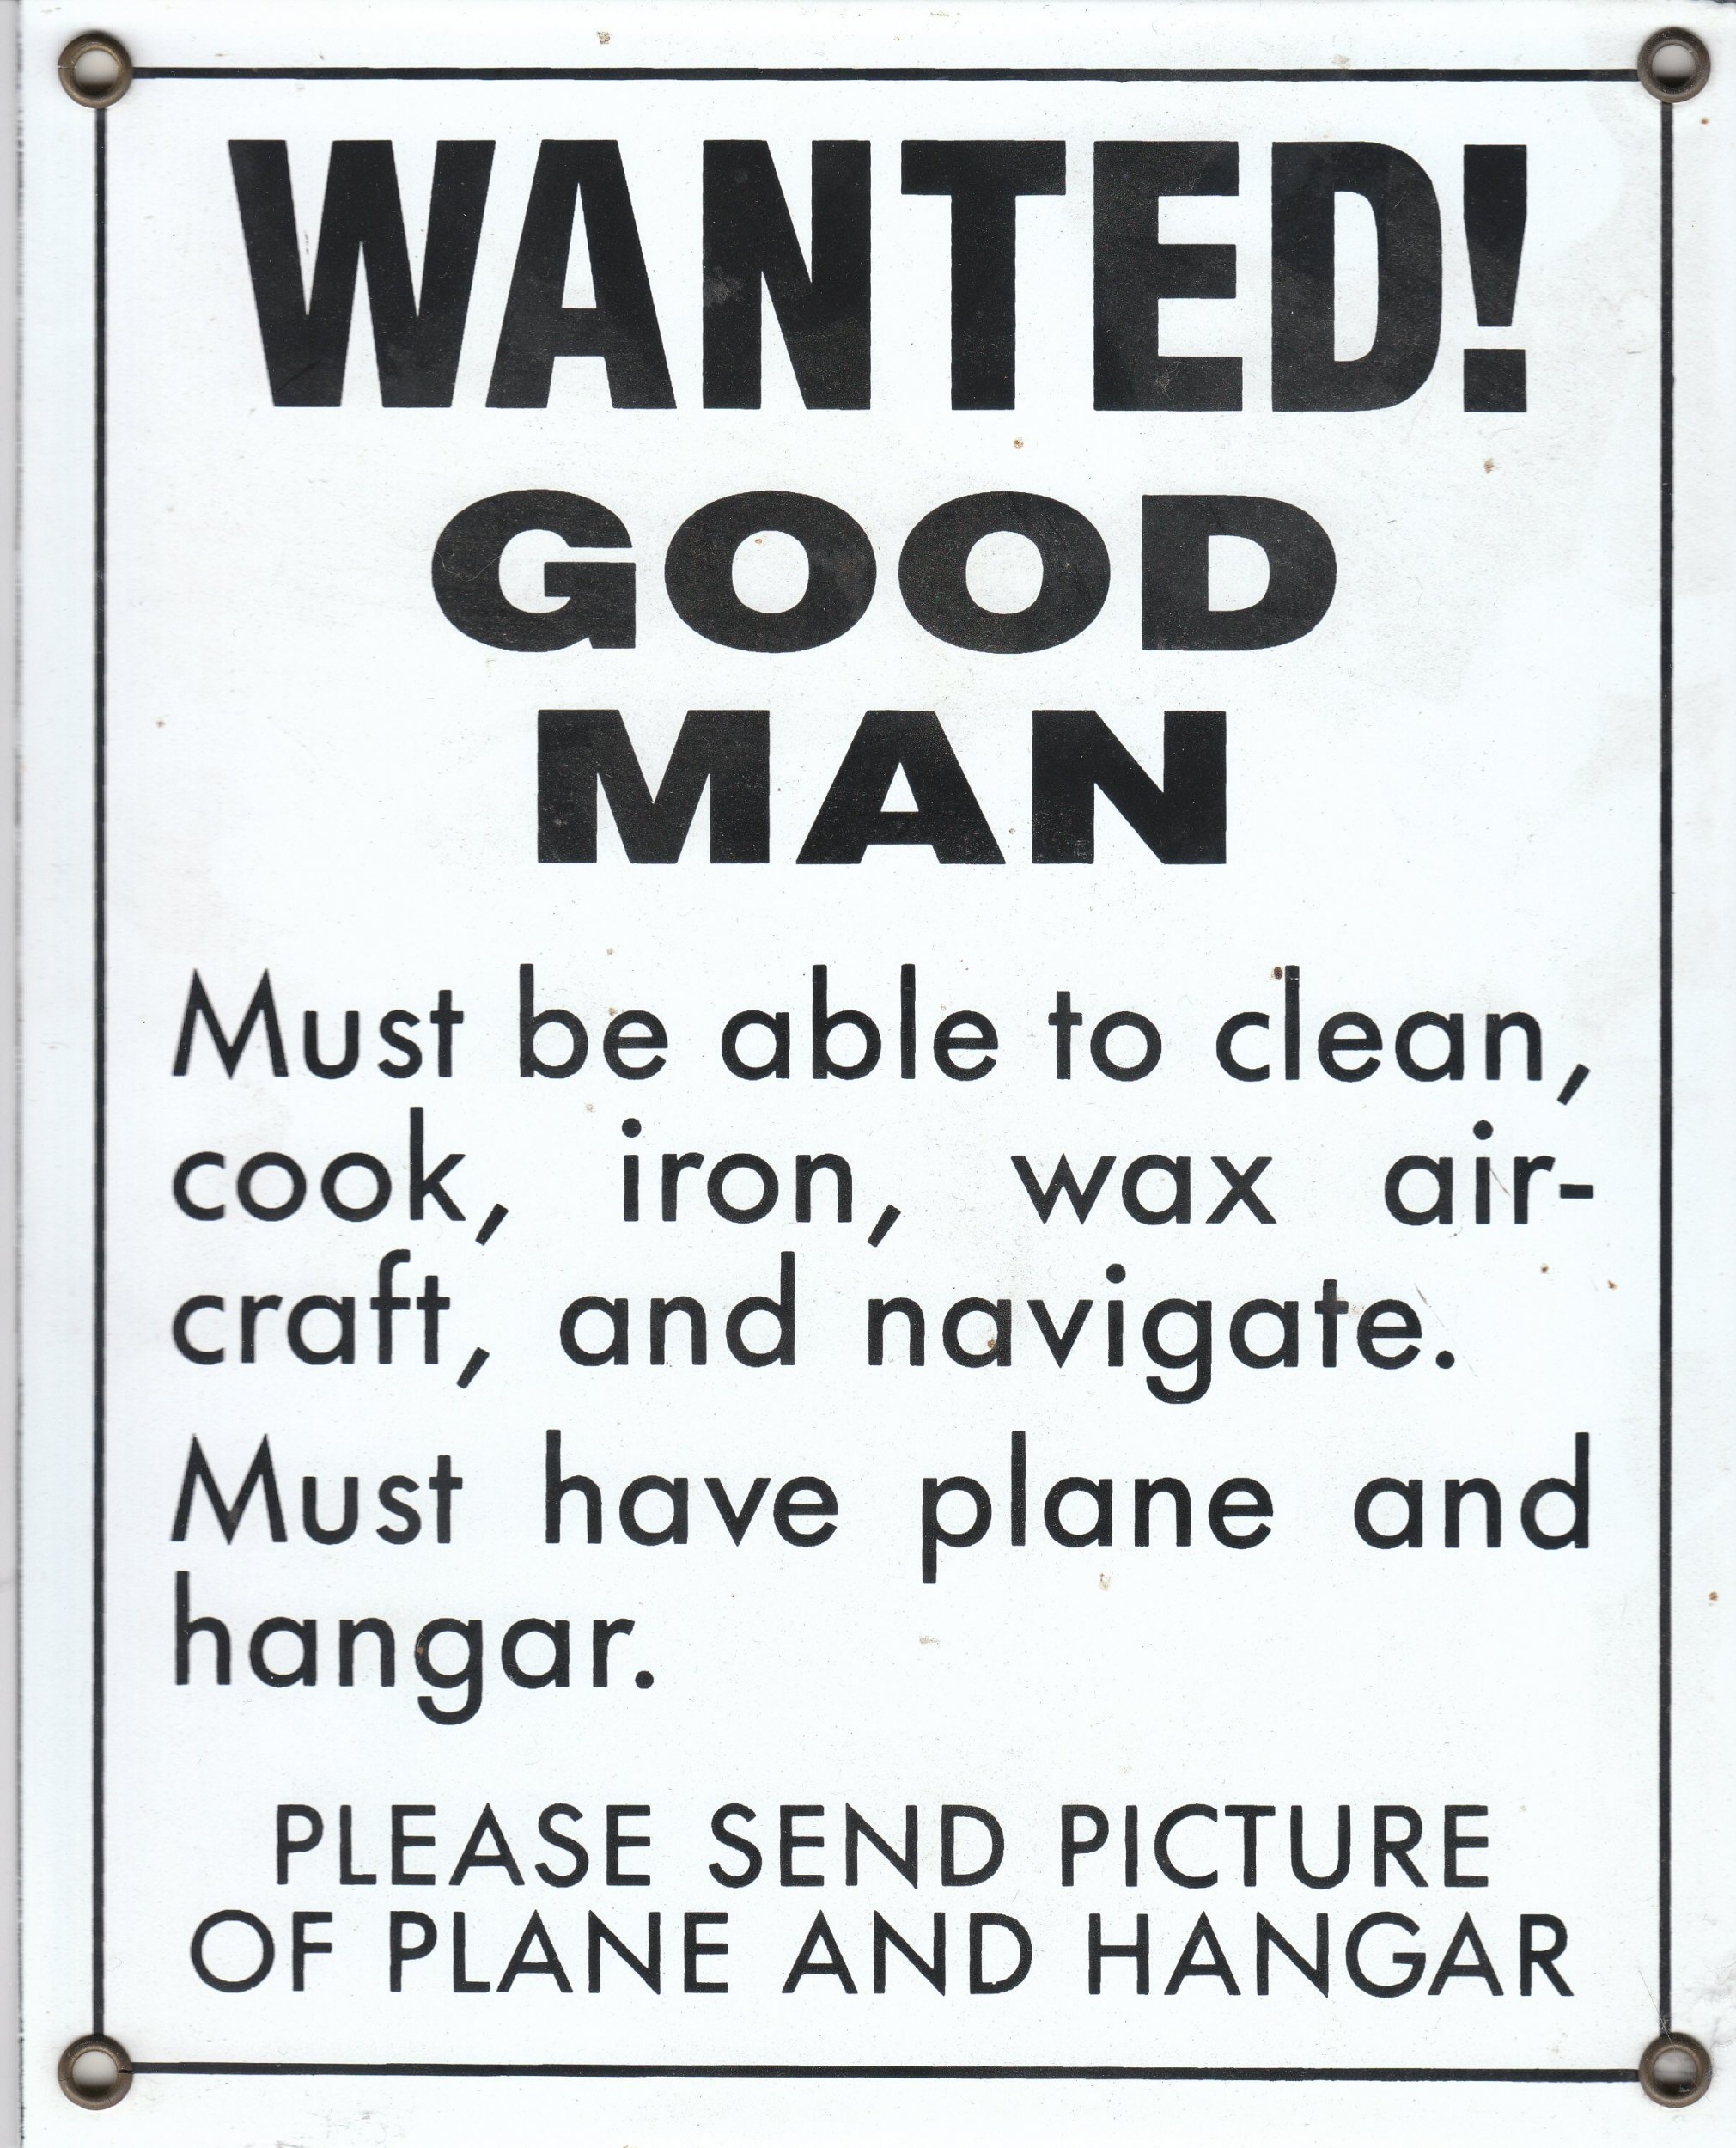 Mant Wanted.jpg